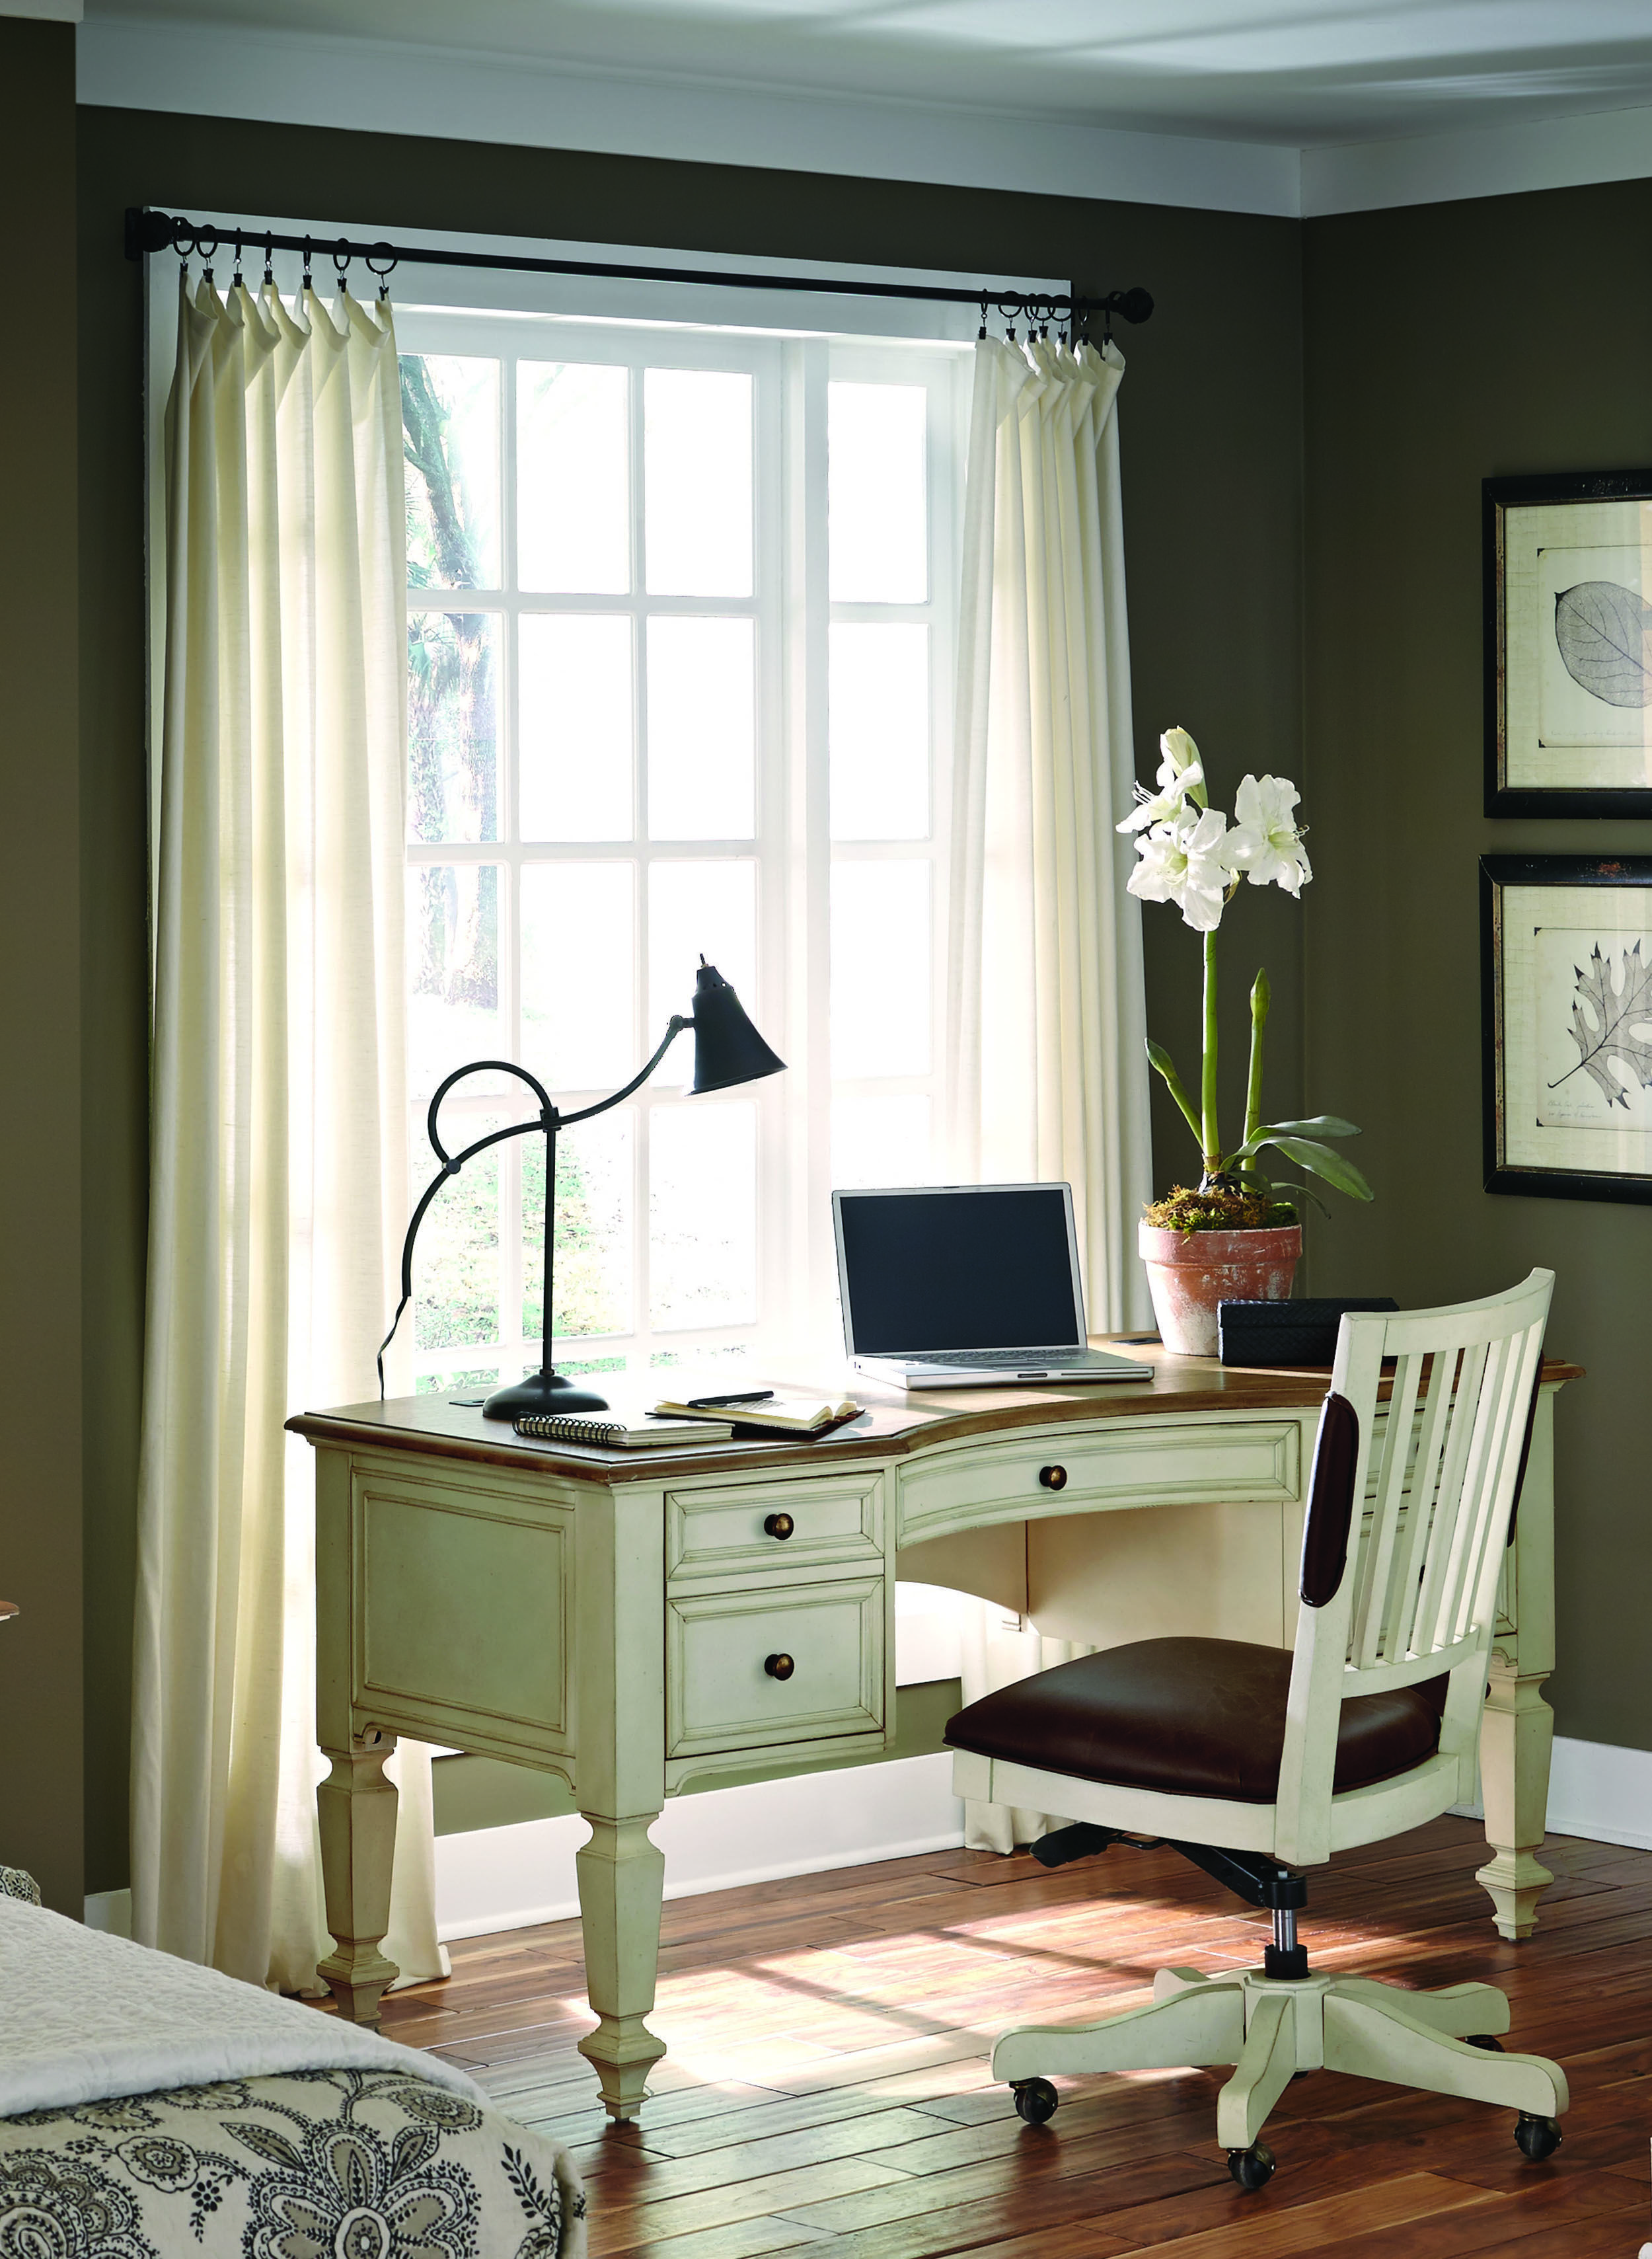 Rc Willey Offers This Beautiful Antique White Executive Desk It S Two Tone Finish With An Oak Top And Framed Drawers Add To Its Traditional